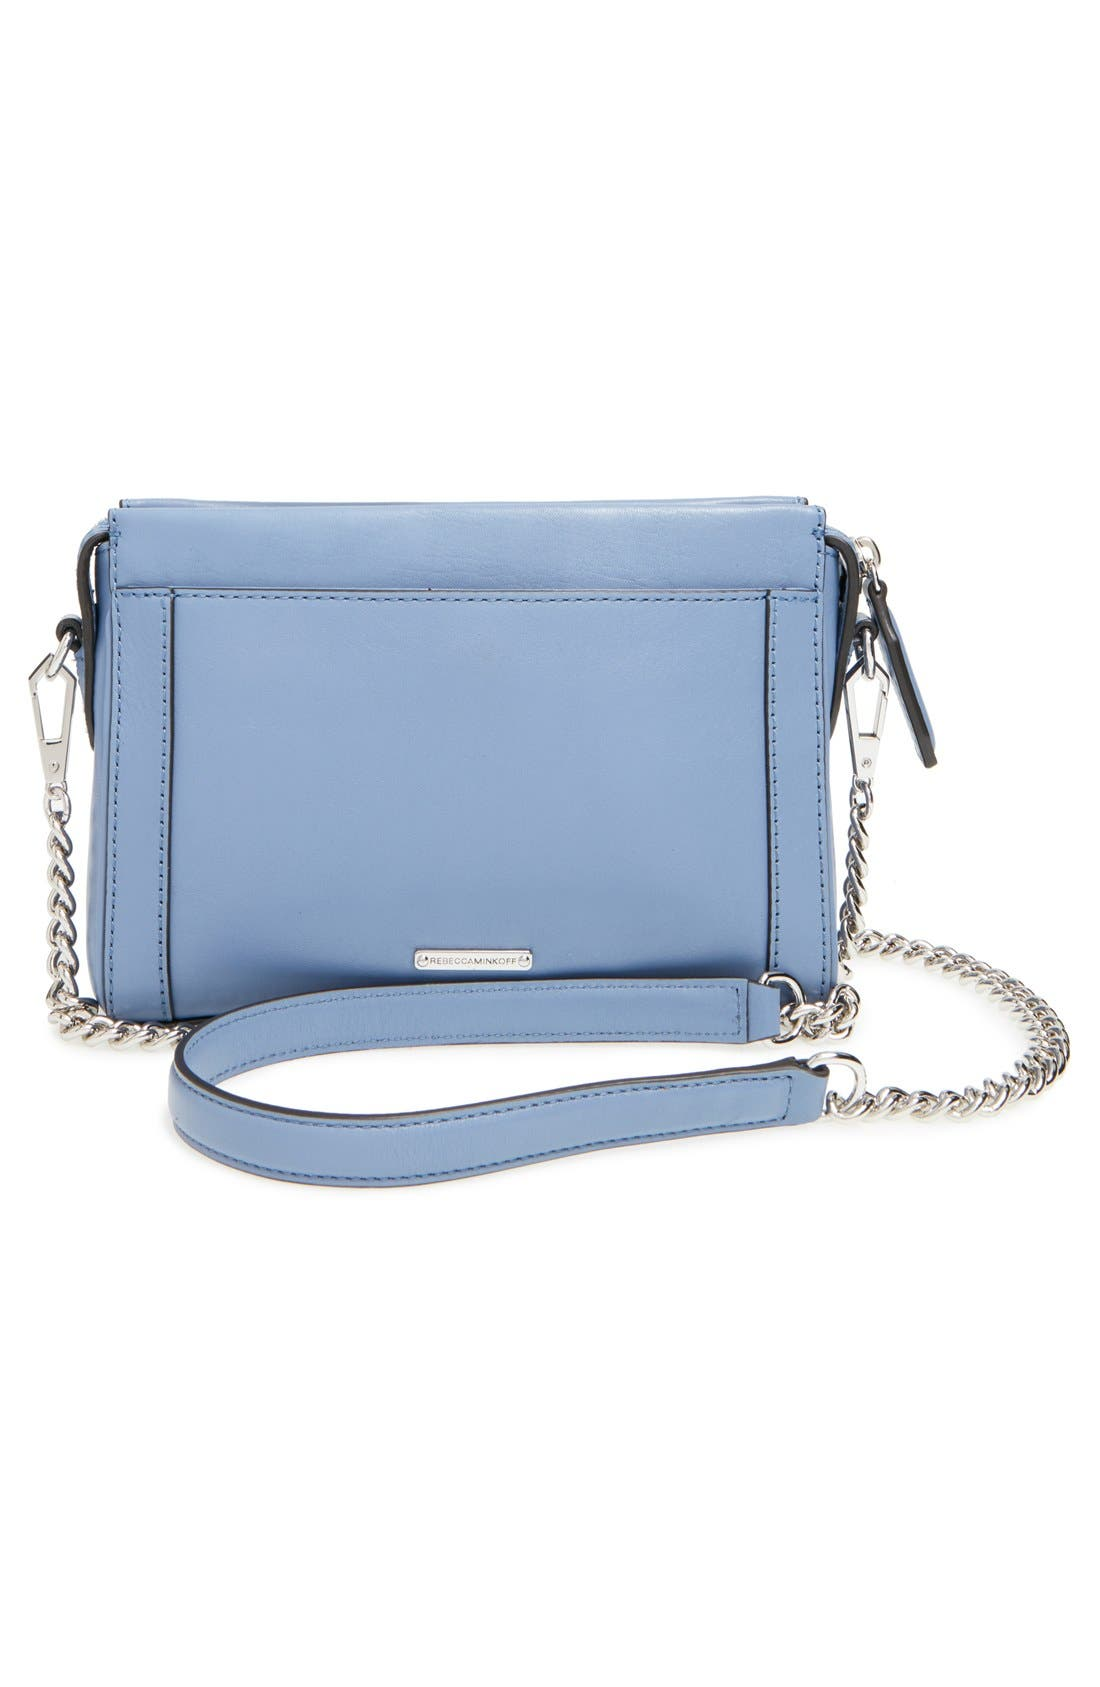 Alternate Image 3  - Rebecca Minkoff 'Mini Crosby' Crossbody Bag